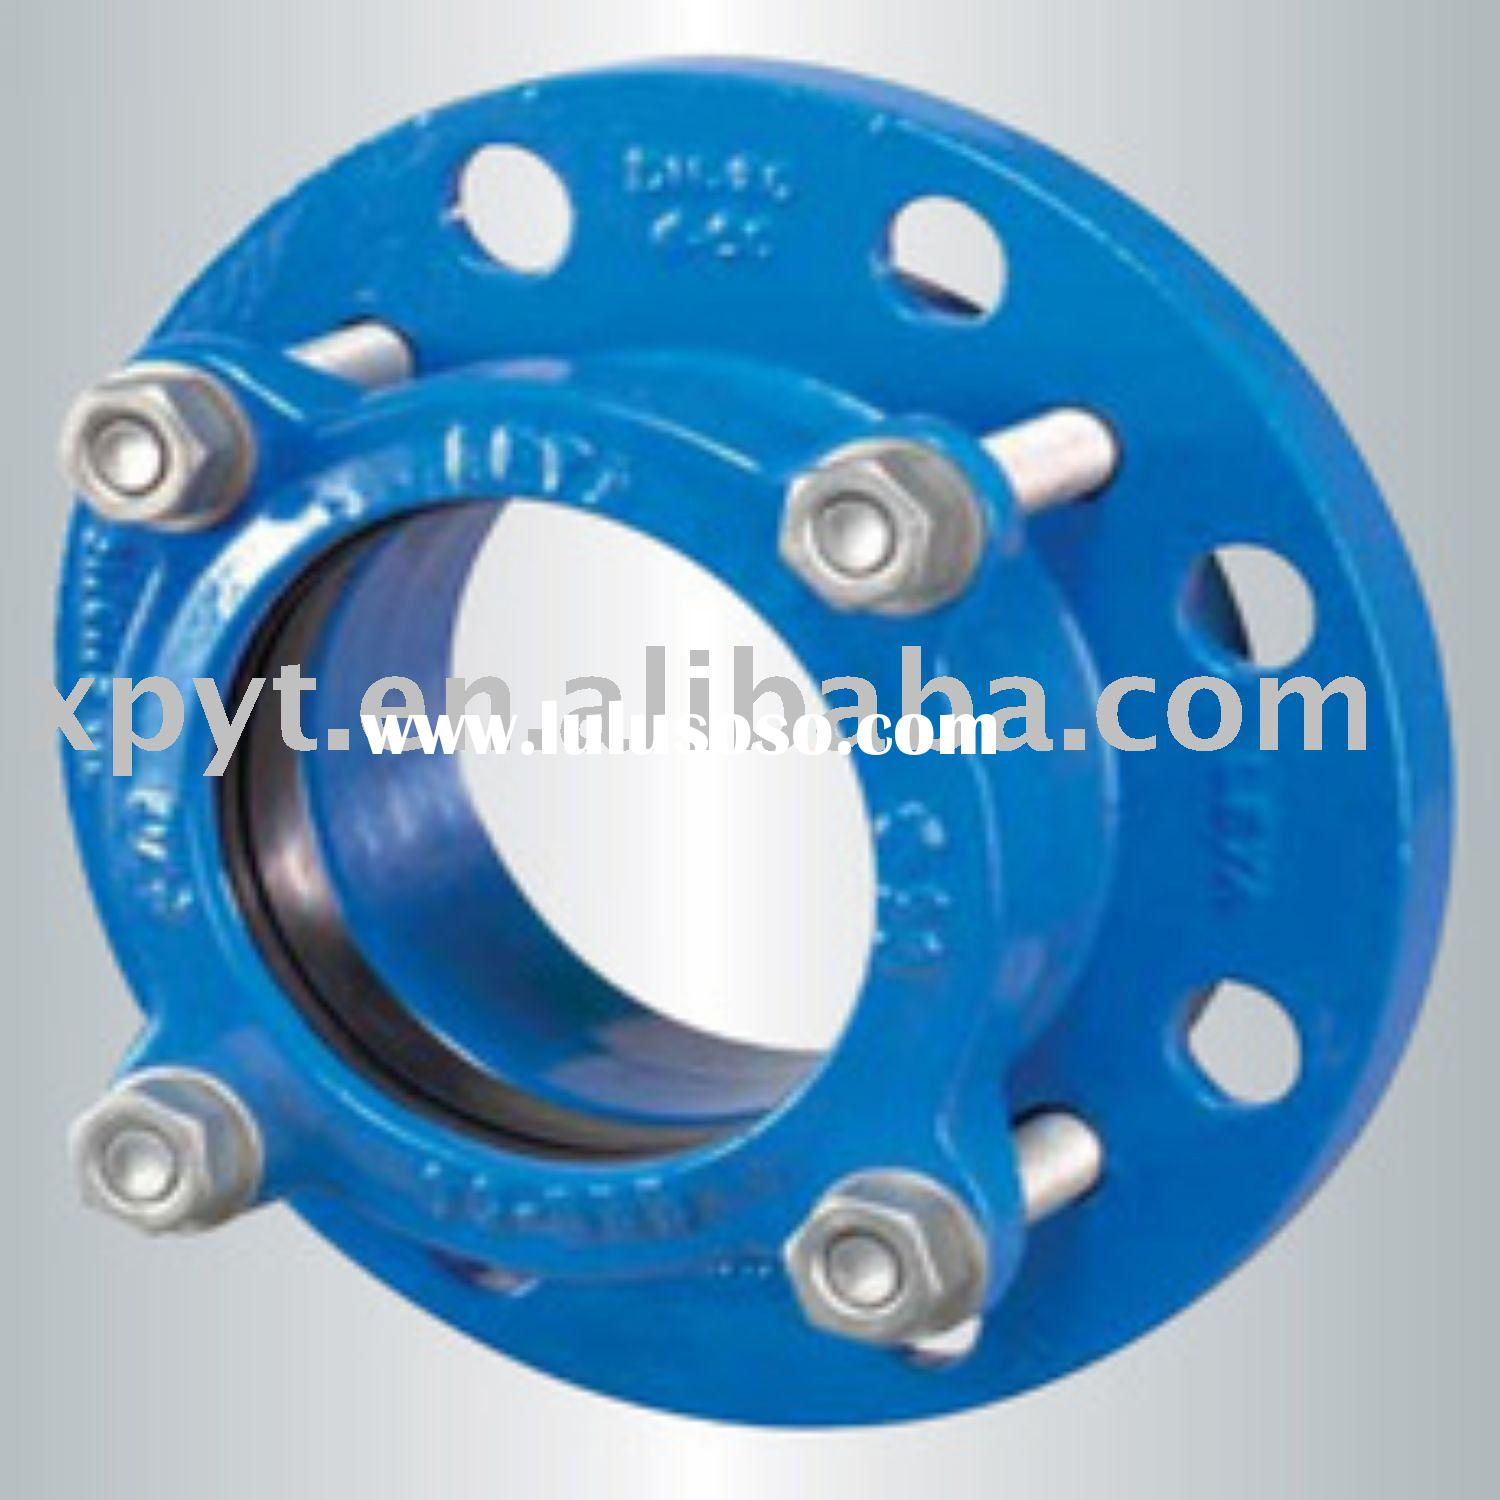 Cast iron pipe fitting - Flange adaptor